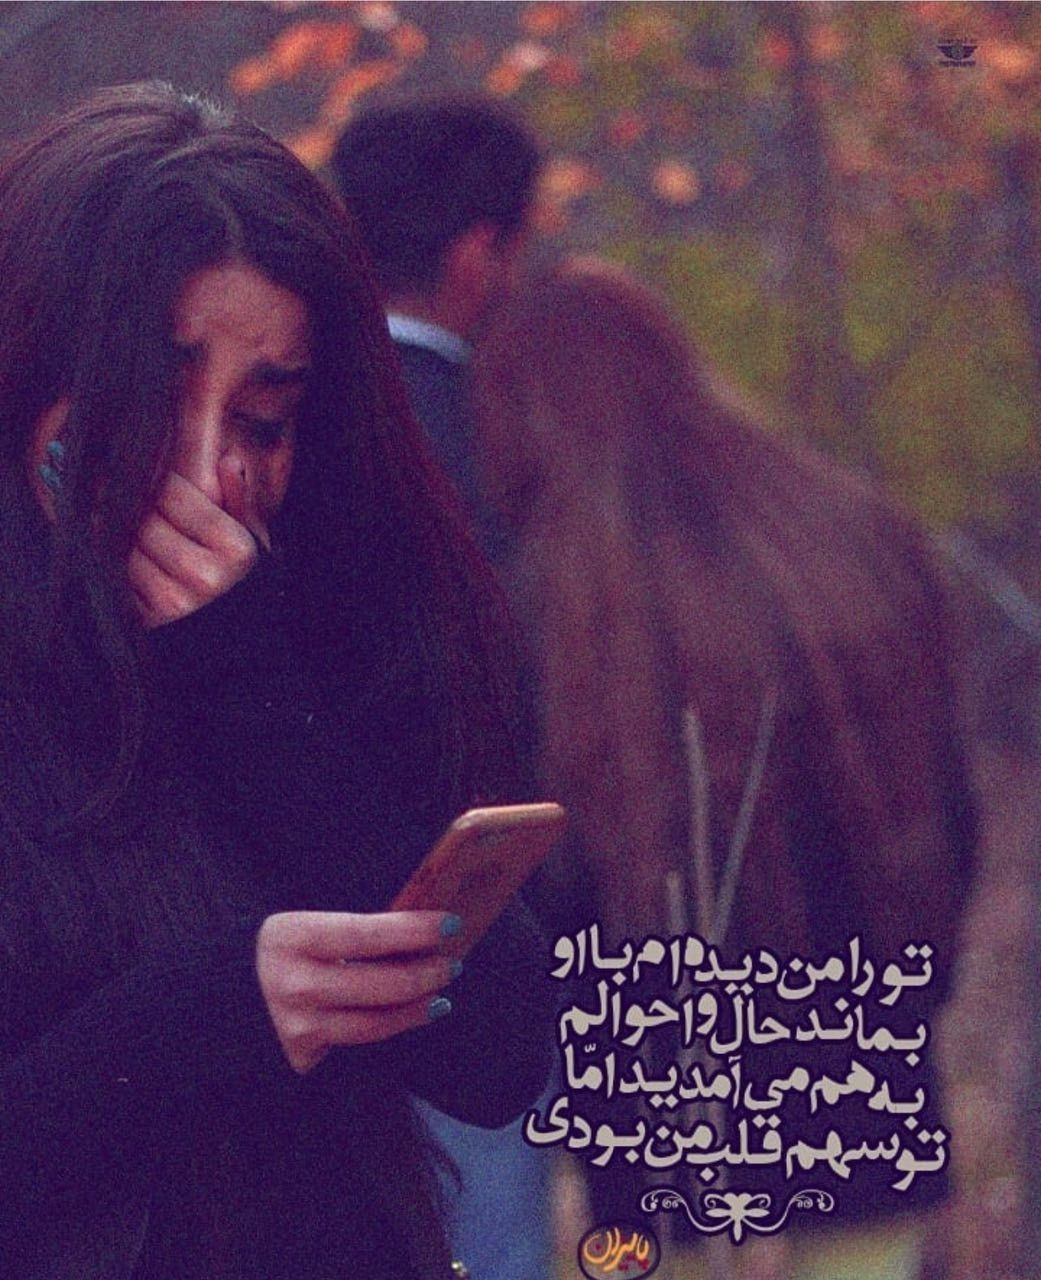 Pin by Elnaz Abedpour on delbaraneh | Persian quotes, Cool words, Quotes